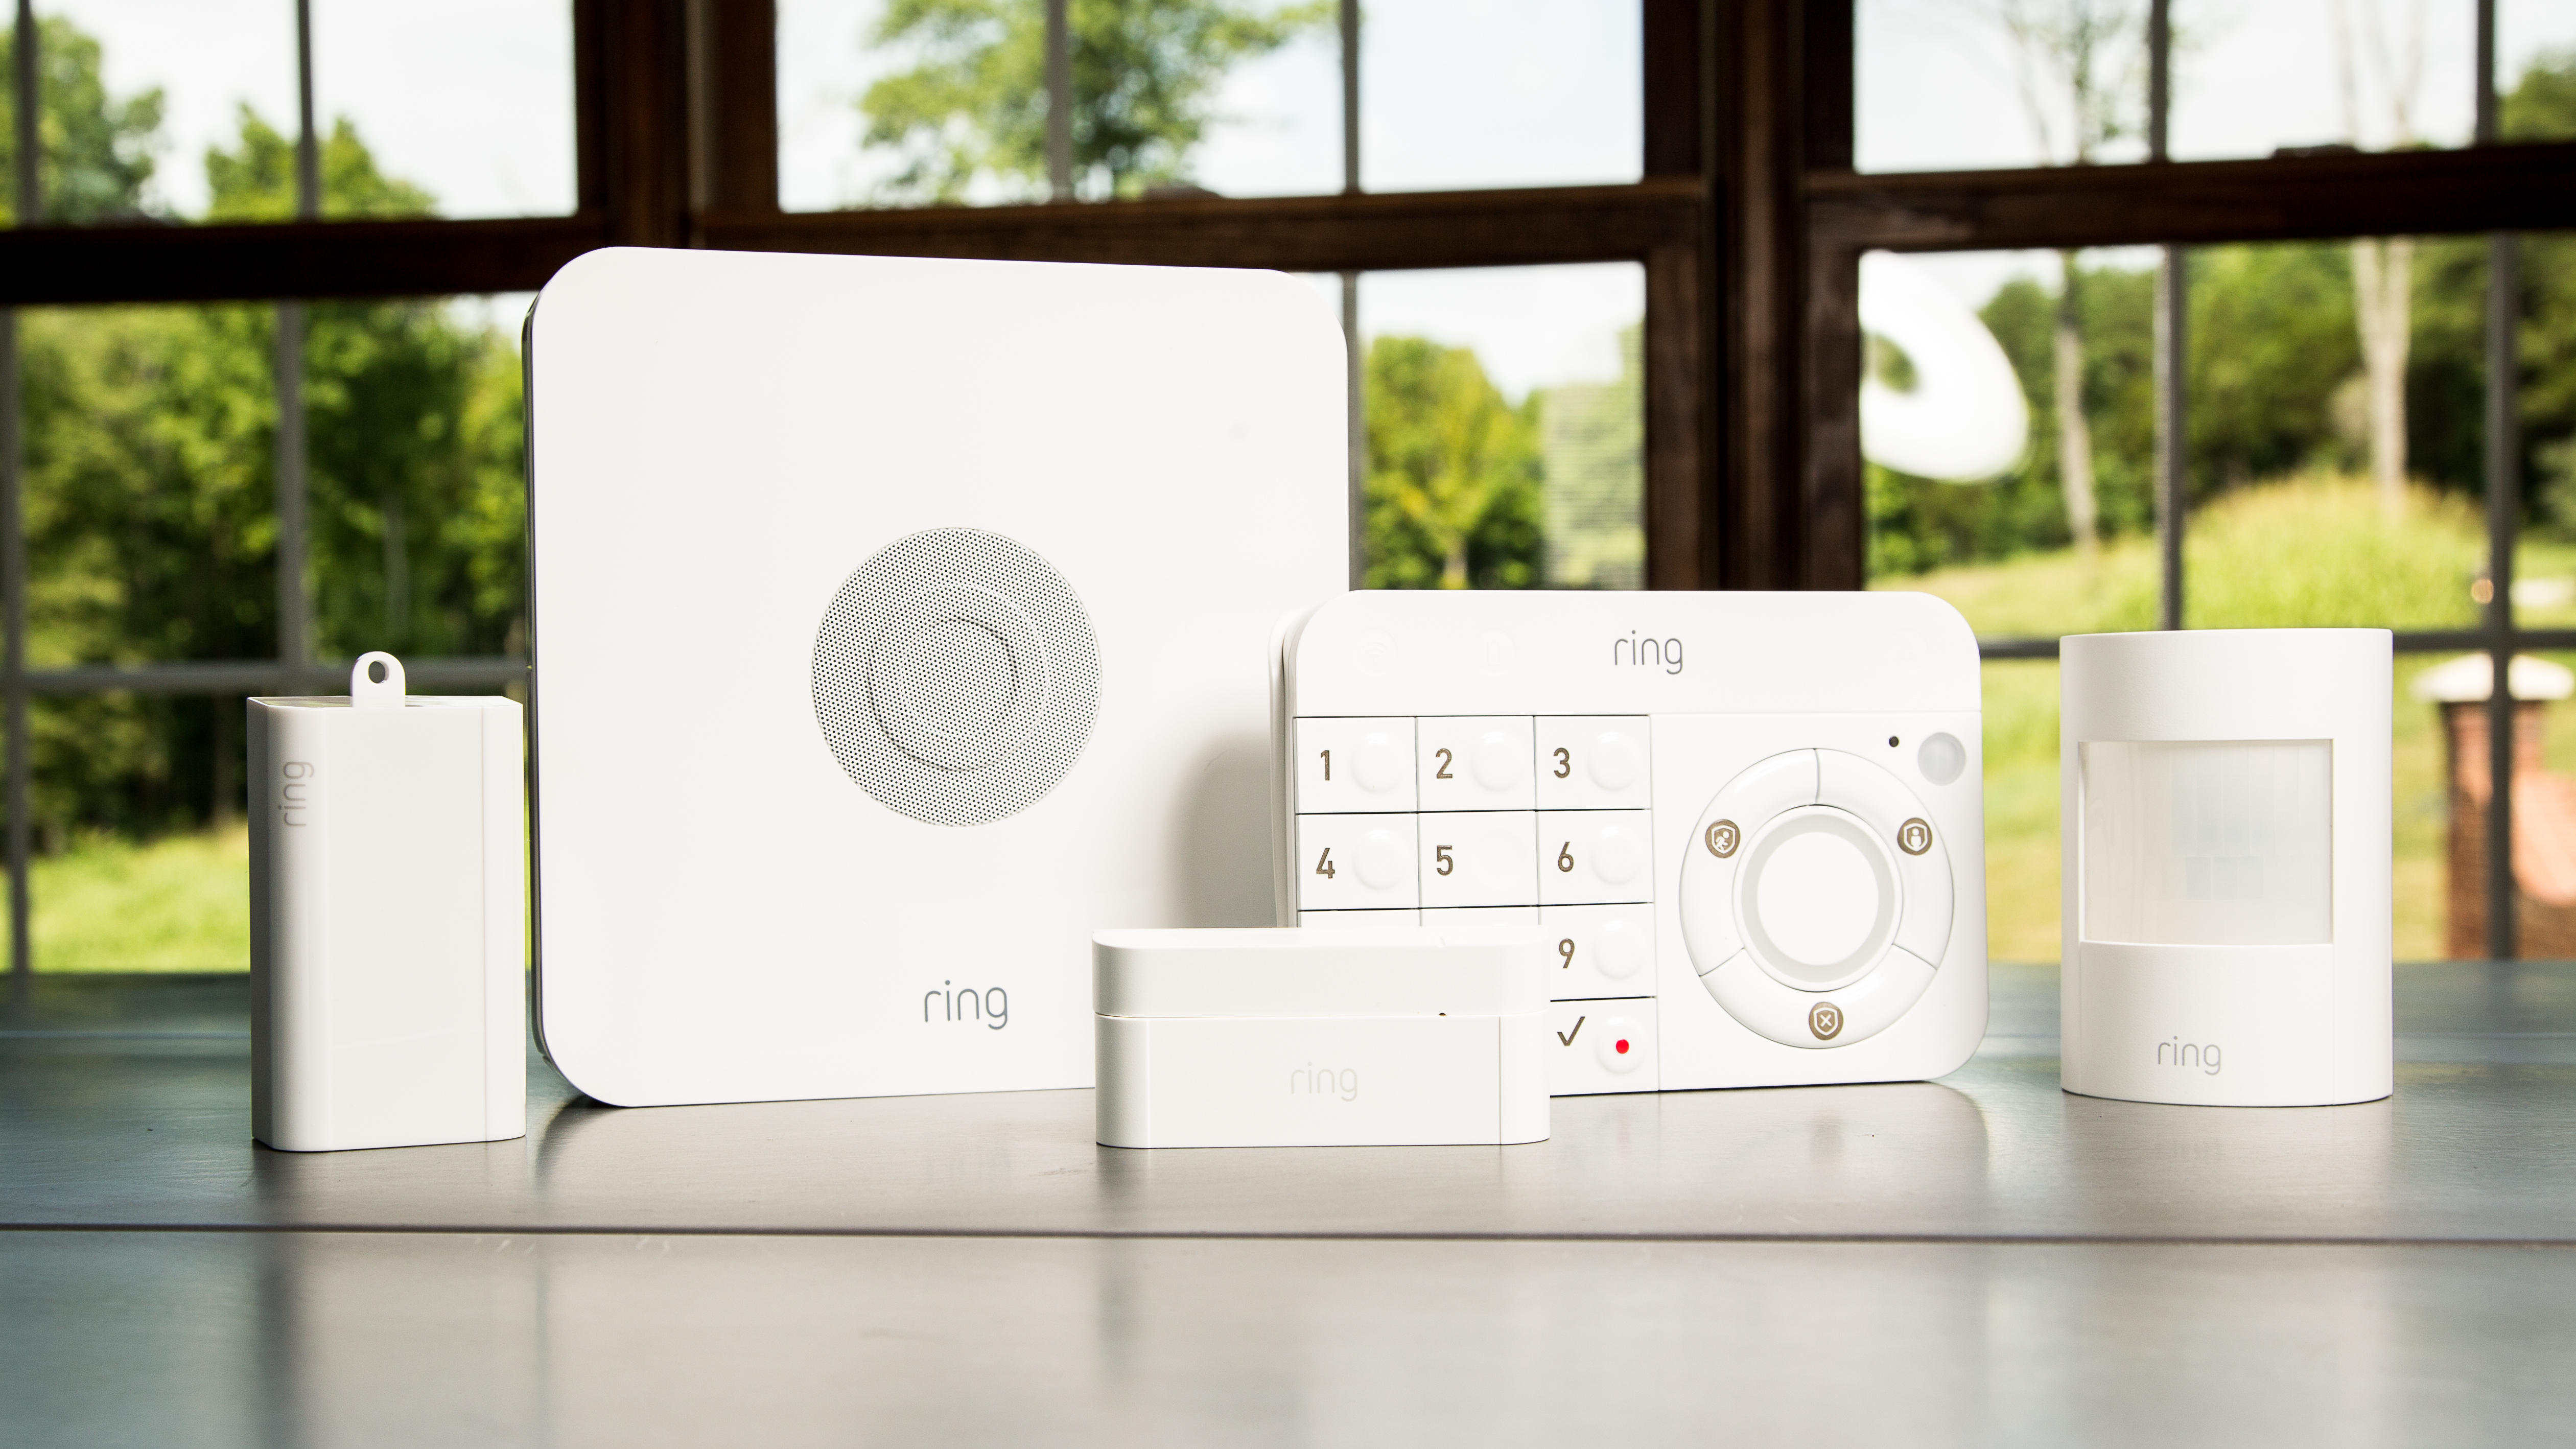 Ring Alarm Security Kit Review Ring S Crazy Affordable Diy System Nails Simple Home Security Cnet